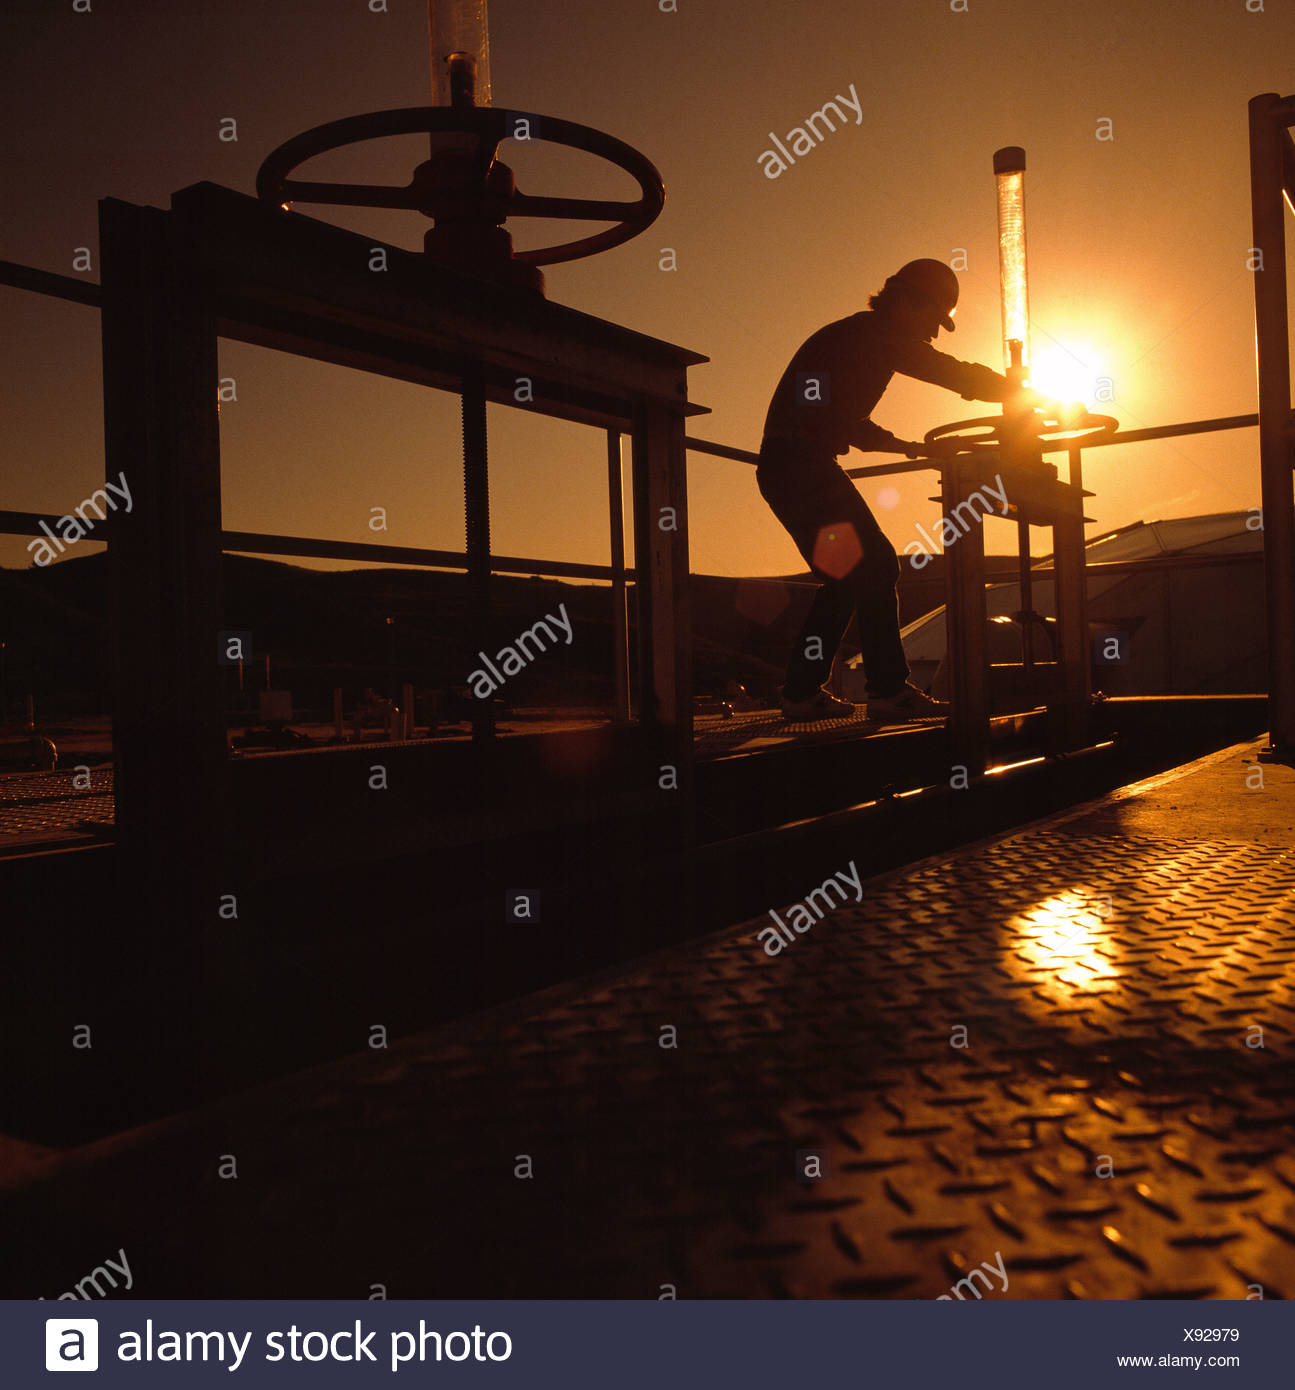 Silhouette of chemical plant worker turning valve - Stock Image